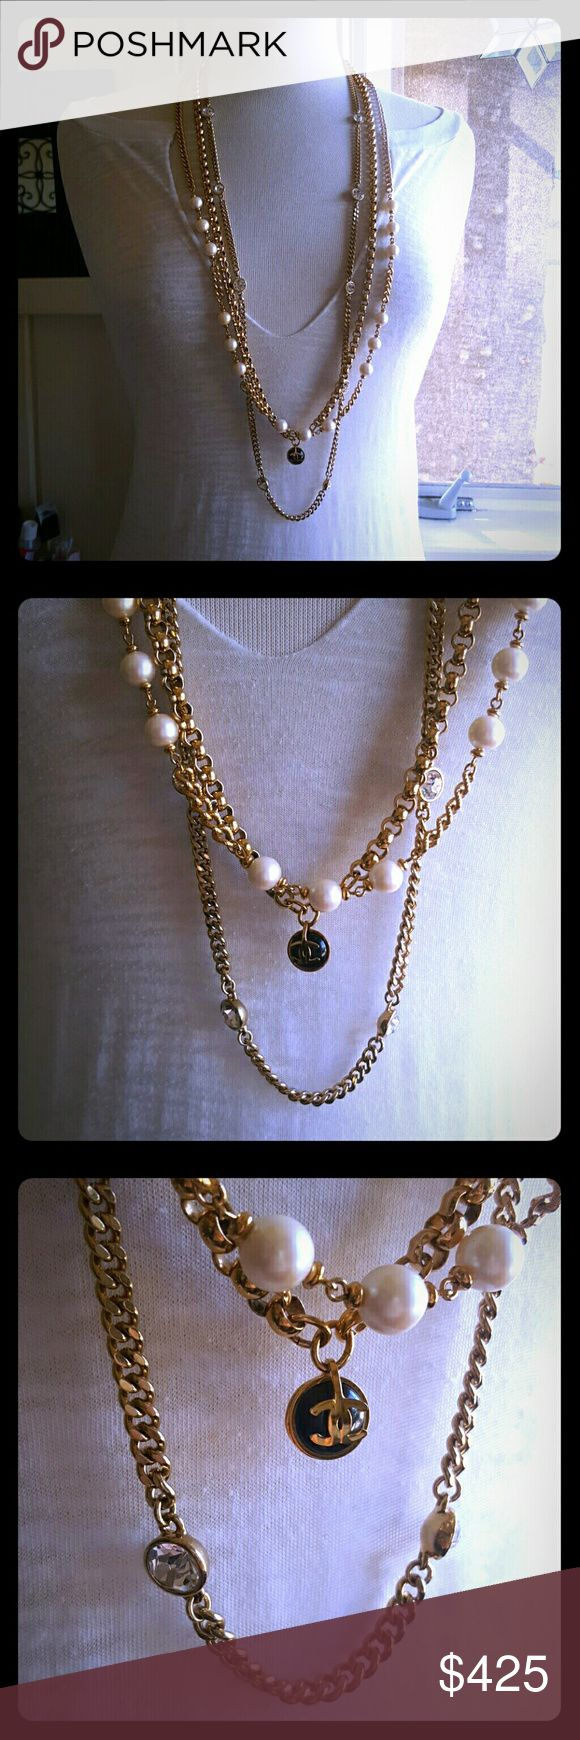 """CHANEL CC Pearl Necklace Authentic Chanel CC Pendant in high shine gold-tone and black onyx (dome cut onyx and design). Please note this Chanel pendant has been paired with three high end beautiful gold-tone necklace chains. The 40"""" Givenchy chain has large Swarovski clear crystals; 2nd chain is 36"""" vanilla faux pearls and gold plated links: 3rd 36"""" chain are interlocking circular links w a gold plated lobster clasp. These are all in like new condition, and quite extraordinary! Fast ship…"""